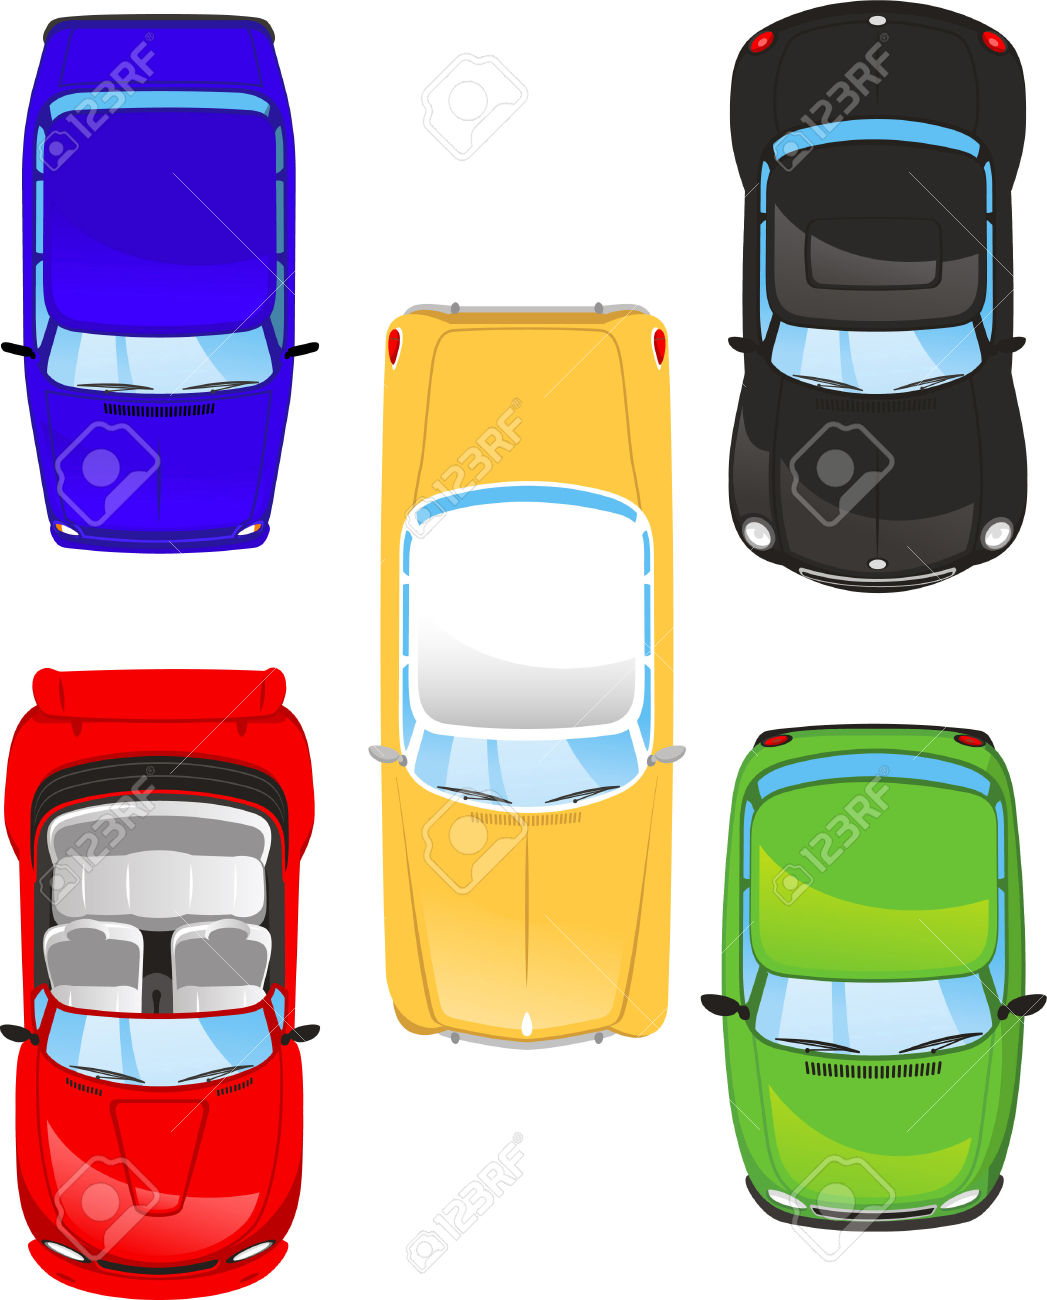 Auto von oben clipart picture library stock Car Top View Set Illustrations Royalty Free Cliparts, Vectors, And ... picture library stock